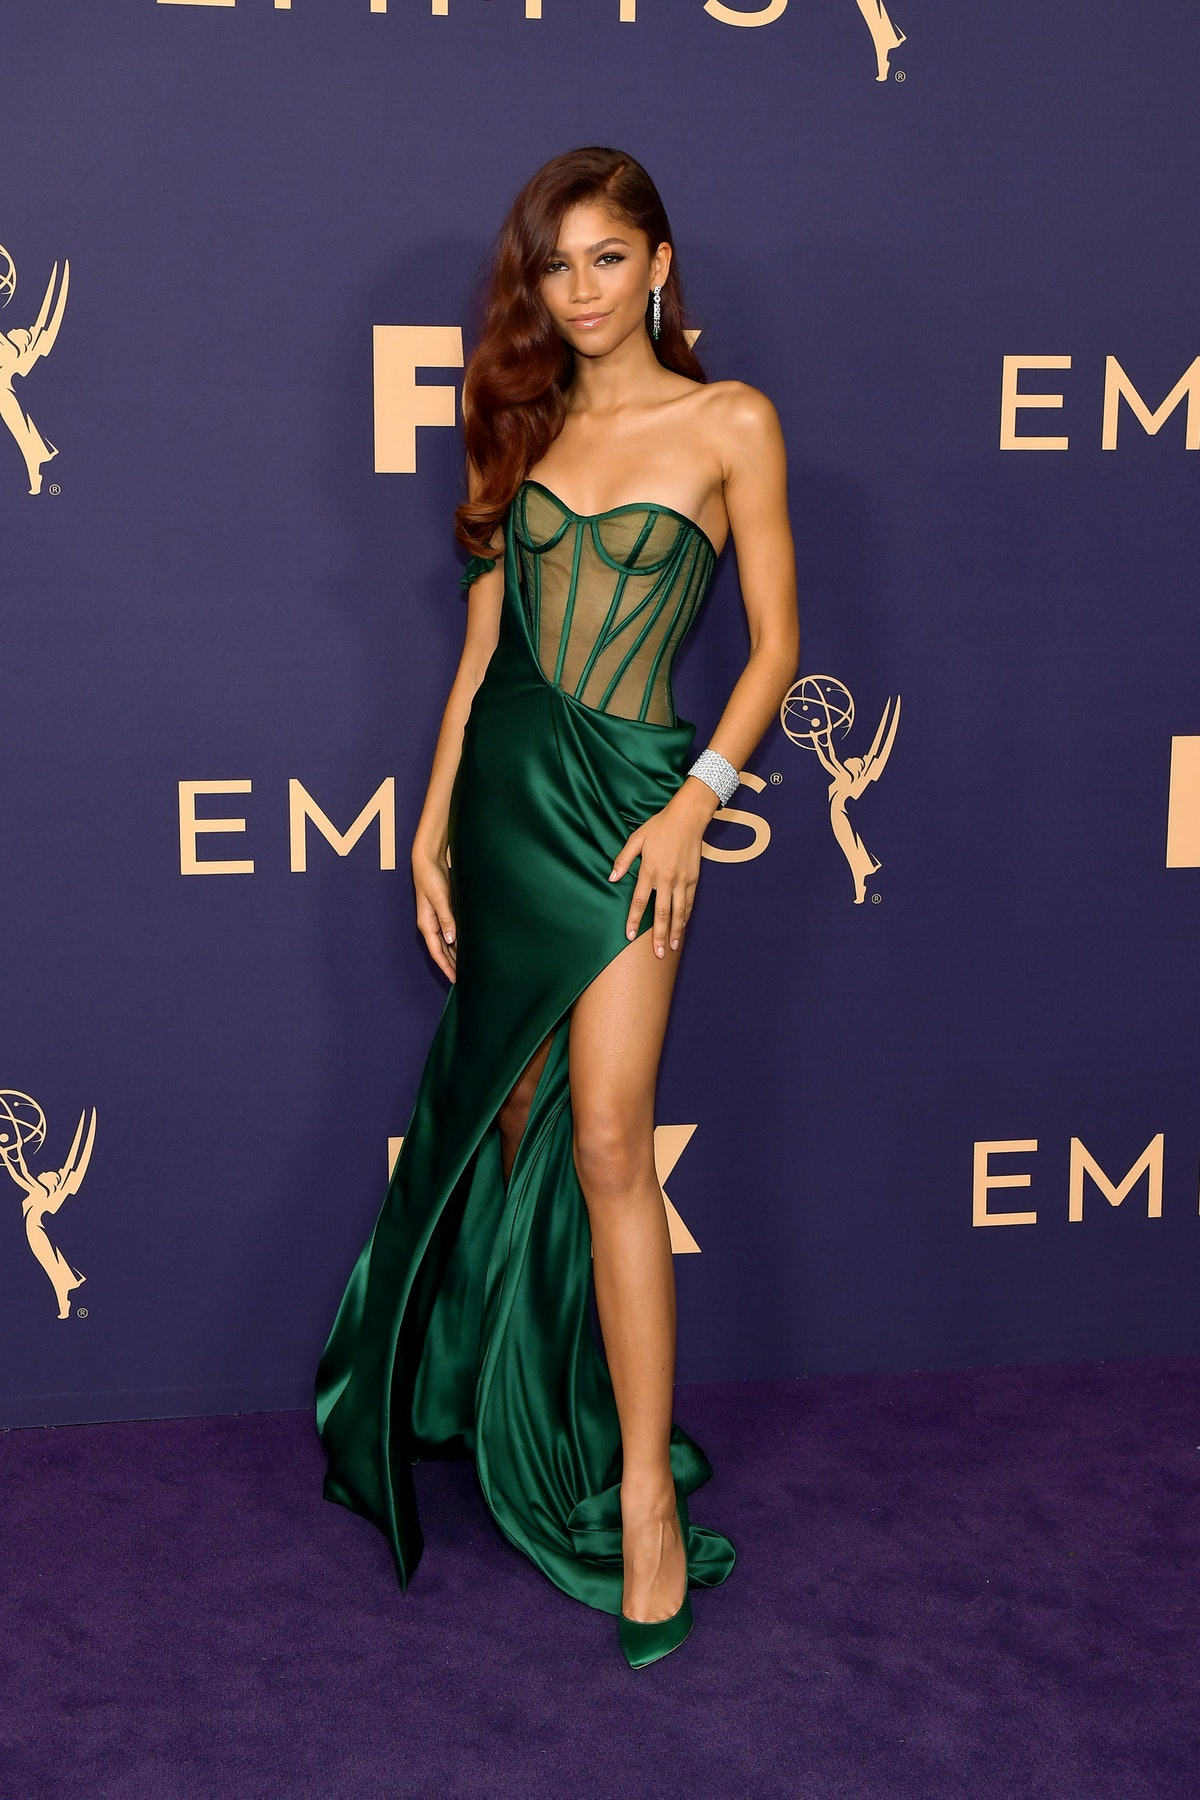 LOS ANGELES, CALIFORNIA - SEPTEMBER 22: Zendaya attends the 71st Emmy Awards at Microsoft Theater on...